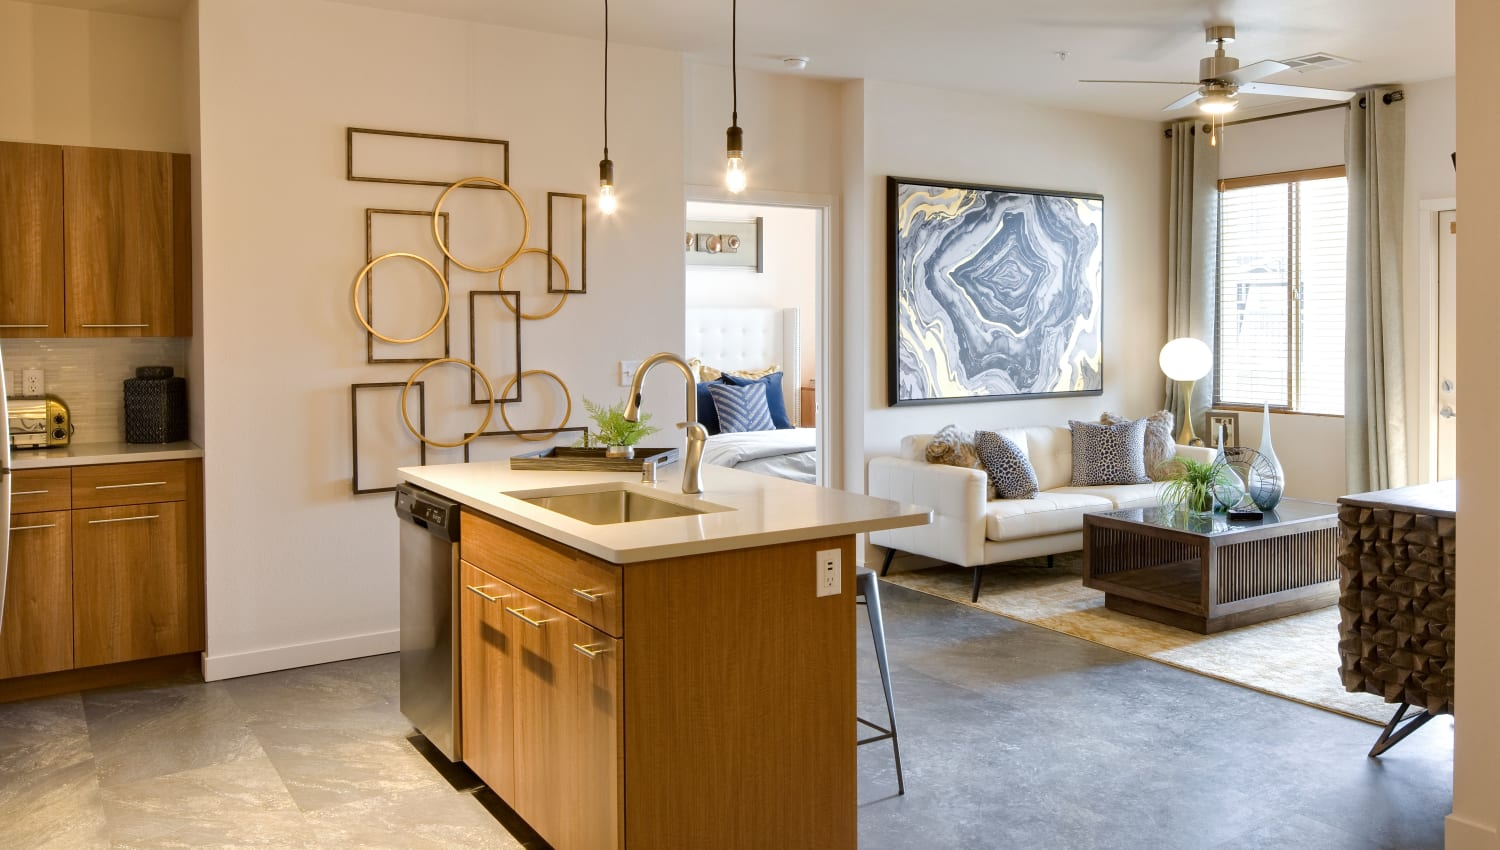 Spacious kitchen and living room in a model apartment at Olympus Alameda in Albuquerque, New Mexico